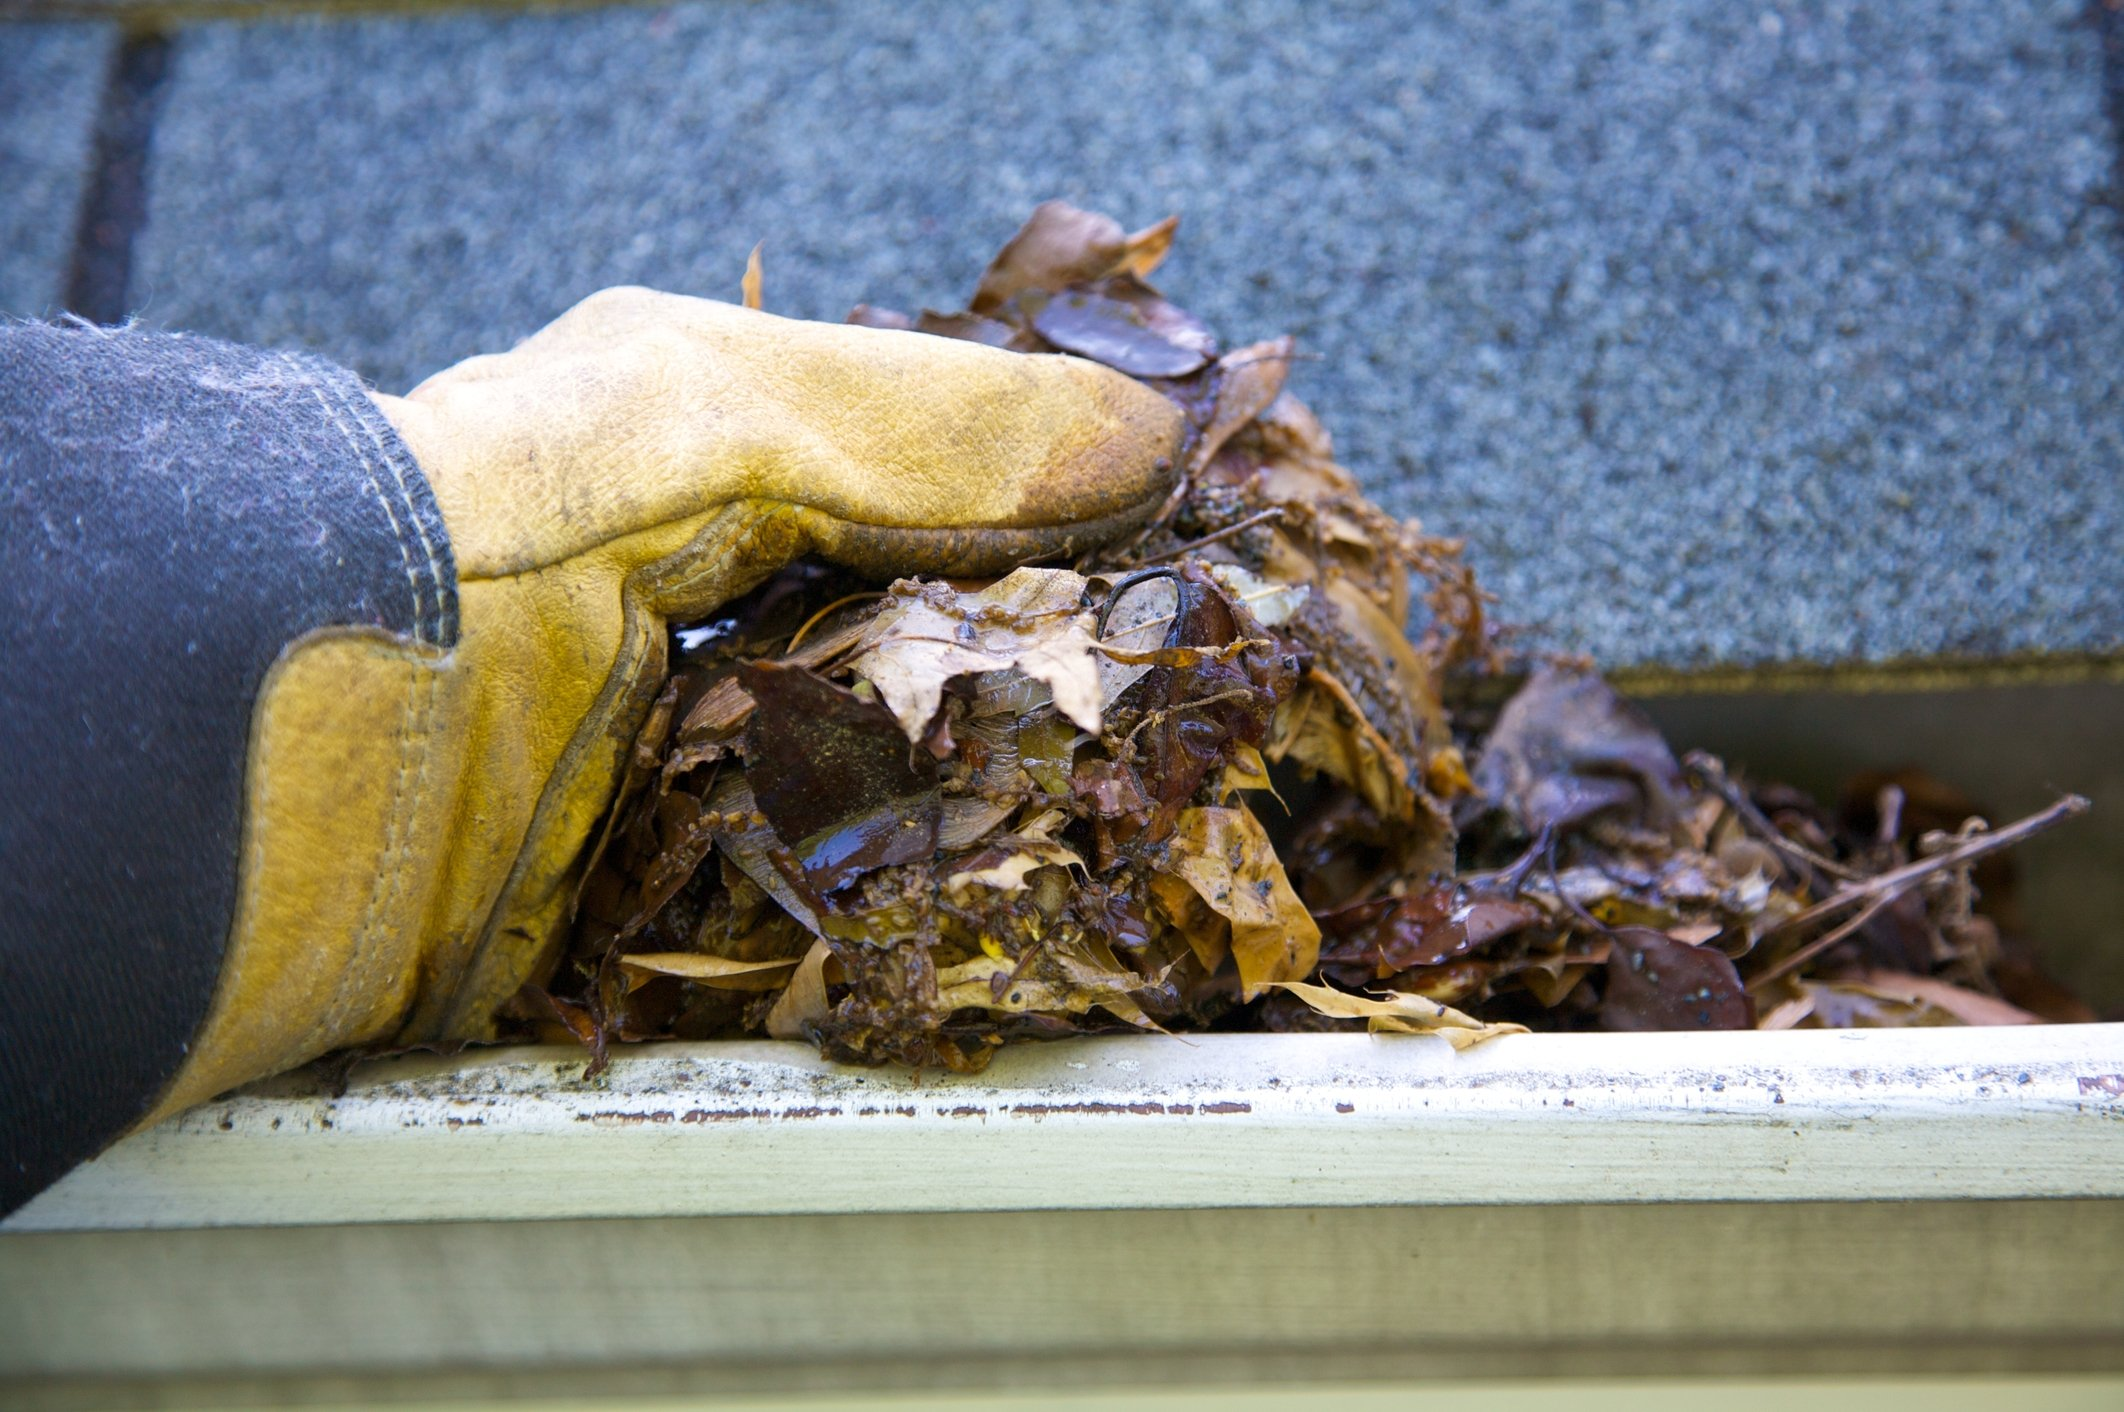 fall-cleanup-leaves-in-gutter-5299933